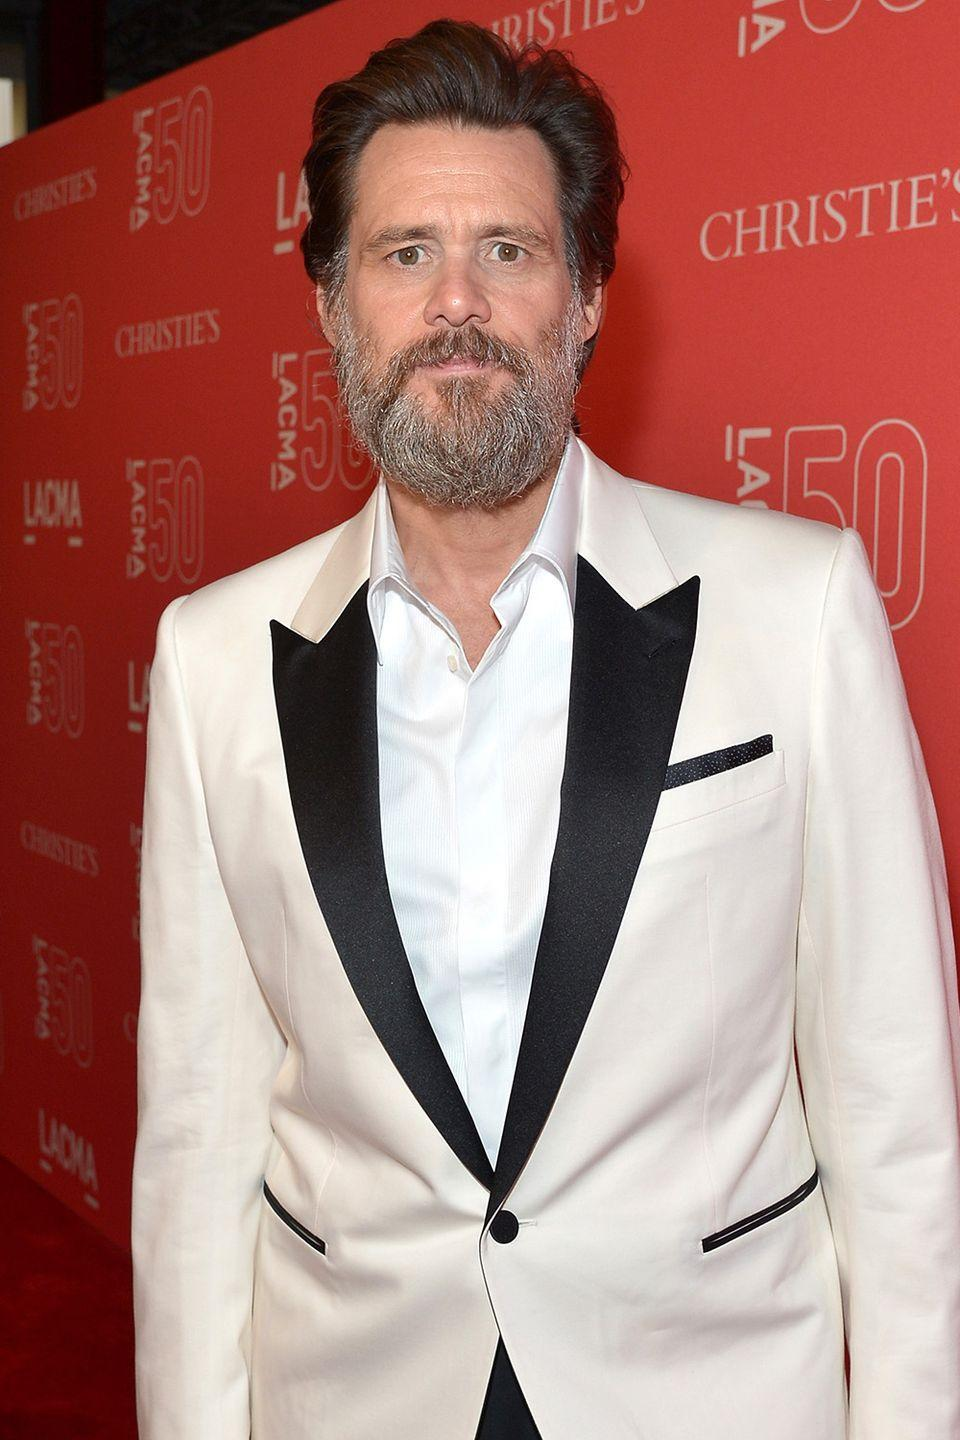 """<p>The comedic actor has spoken very seriously about the topic of substance abuse, telling <a href=""""http://www.cbsnews.com/news/carrey-life-is-too-beautiful/"""" rel=""""nofollow noopener"""" target=""""_blank"""" data-ylk=""""slk:CBS News"""" class=""""link rapid-noclick-resp"""">CBS News</a>: 'I rarely drink coffee. I'm very serious about no alcohol, no drugs. Life is too beautiful.' </p>"""